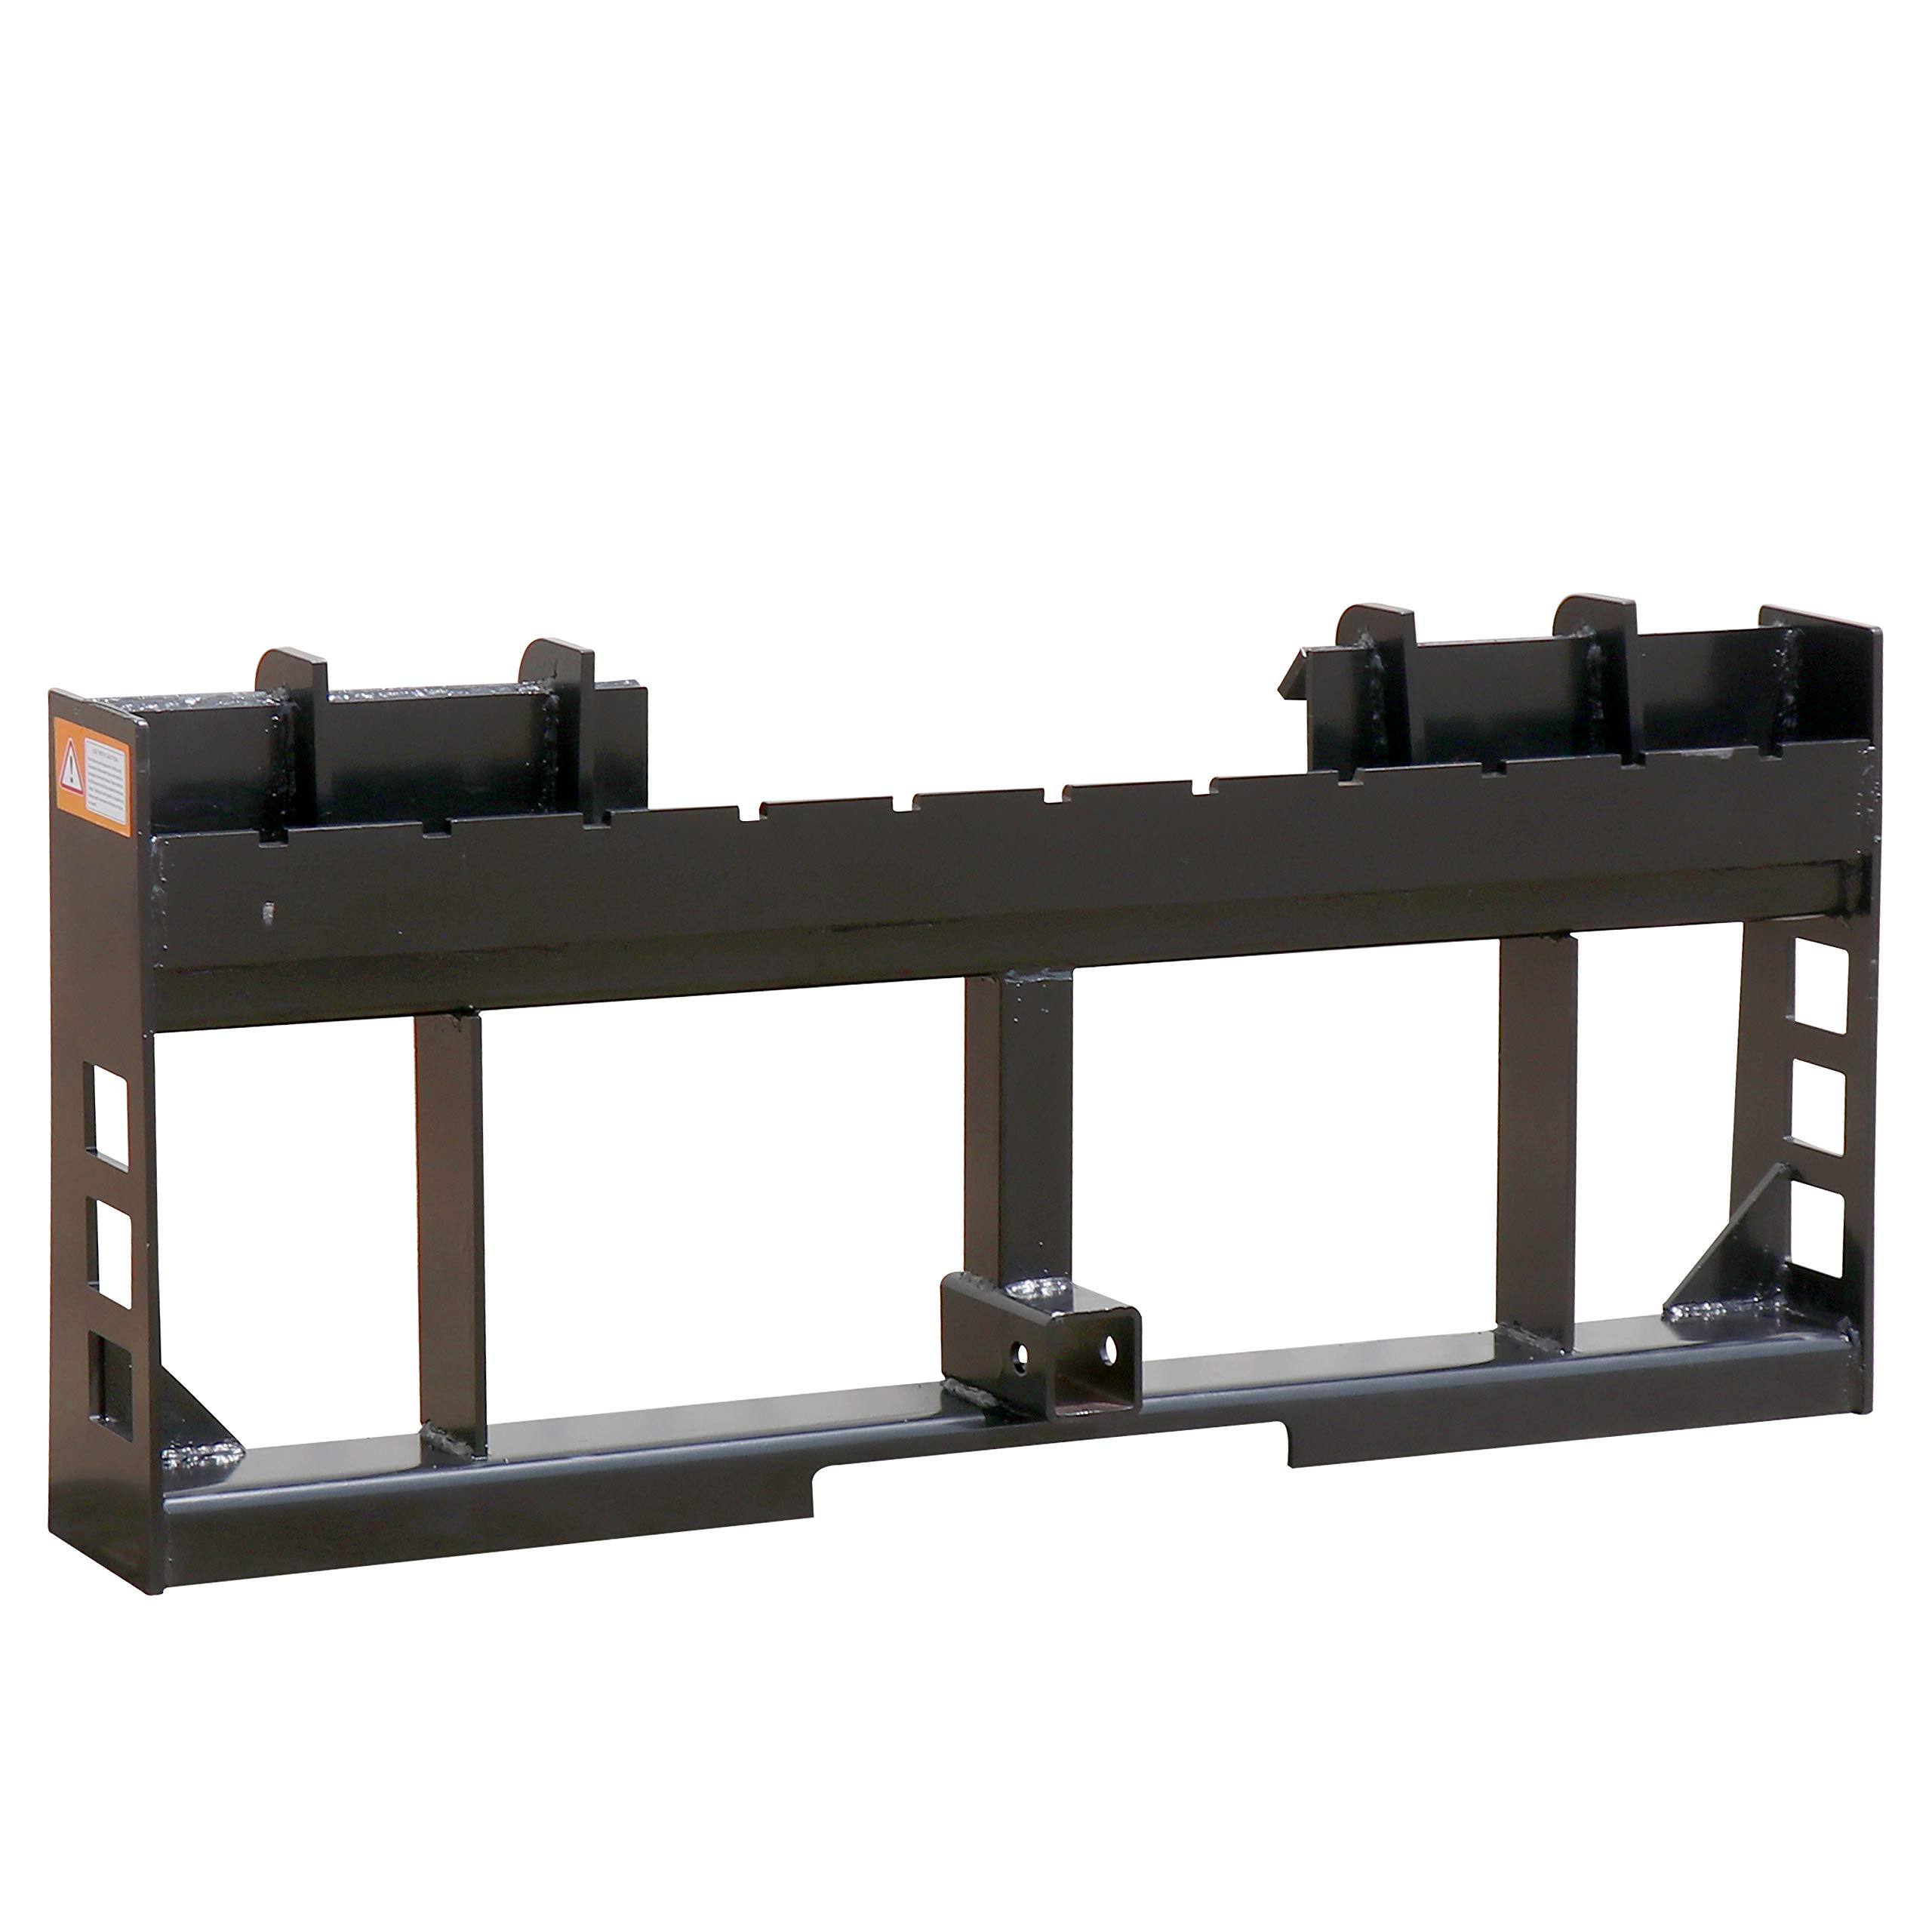 Titan Pallet Fork Frame | 2'' Trailer Receiver Hitch | Fits Skid Steer Loaders by Titan Attachments